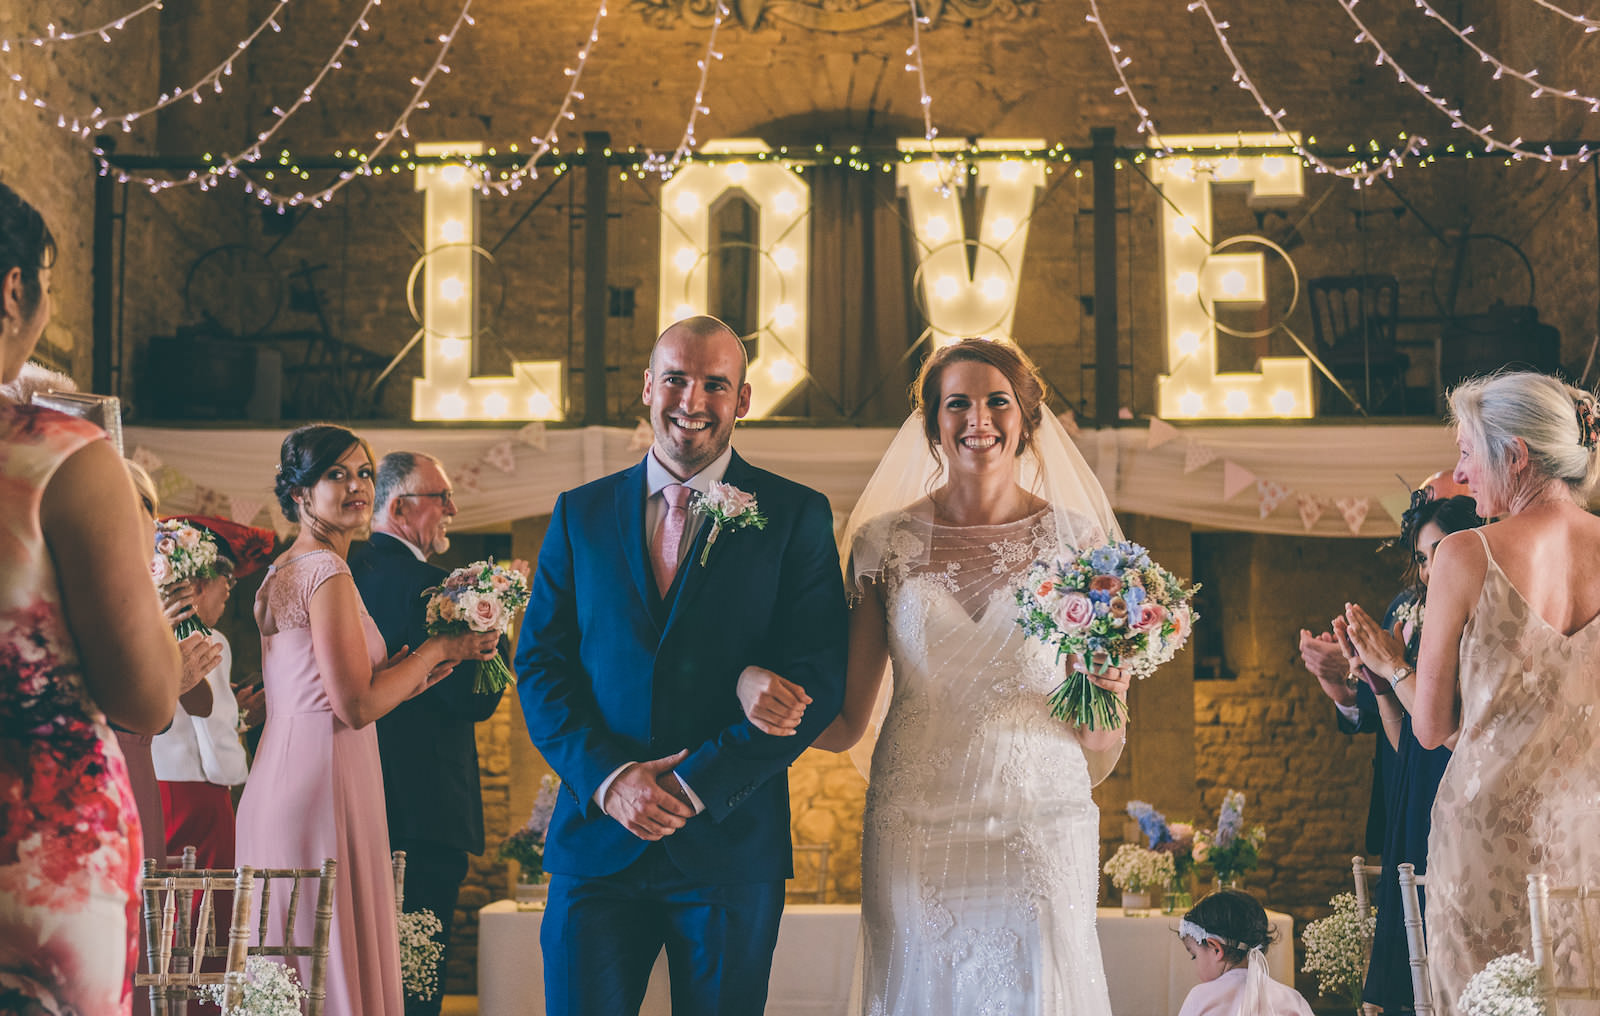 Gloucestershire Wedding Photography Review 2016 – Part Five